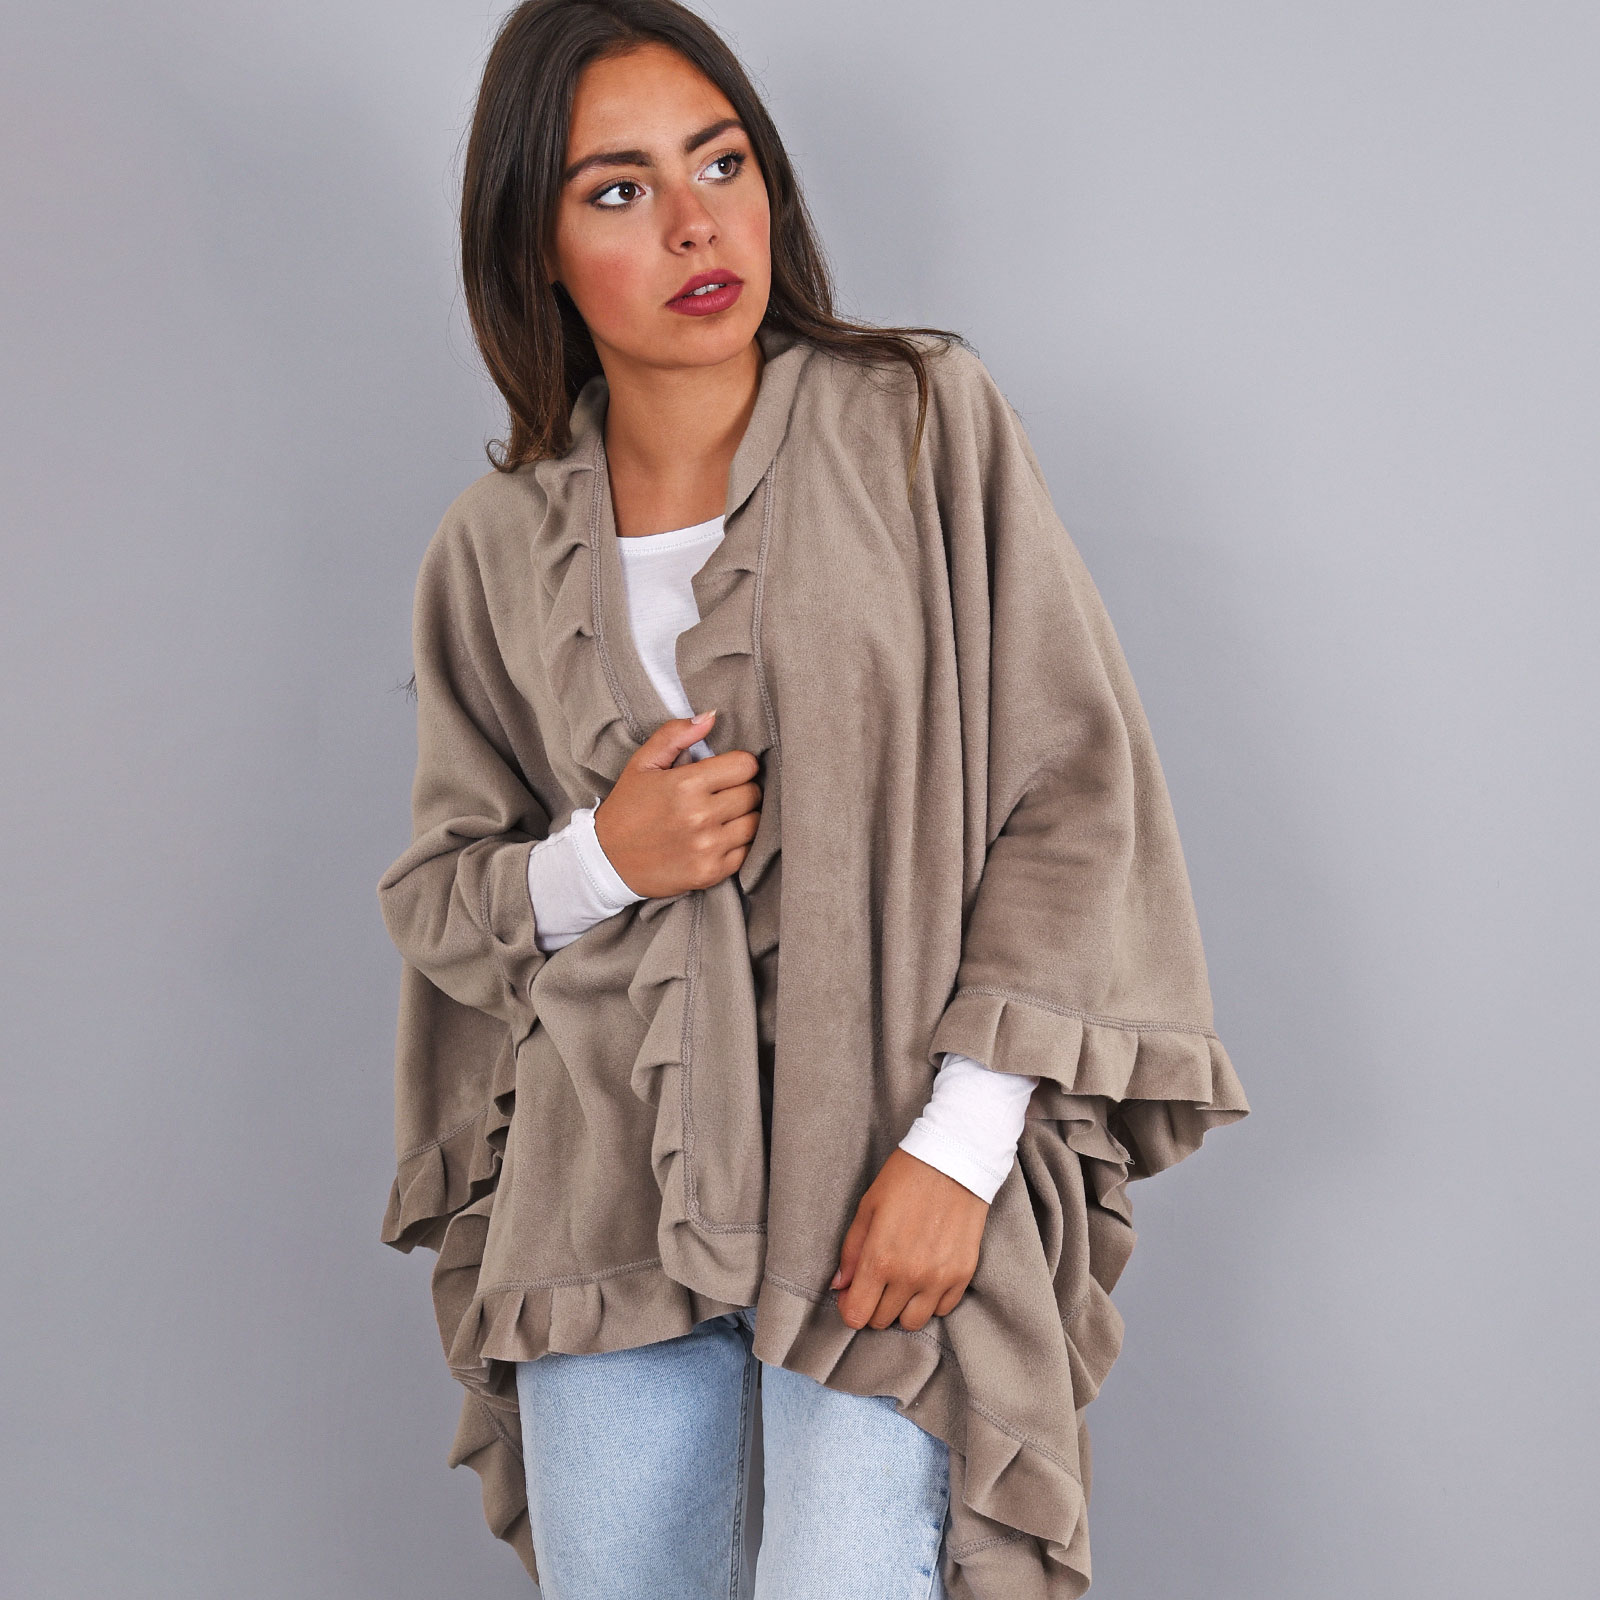 AT-04618-VF16-poncho-femme-polaire-taupe